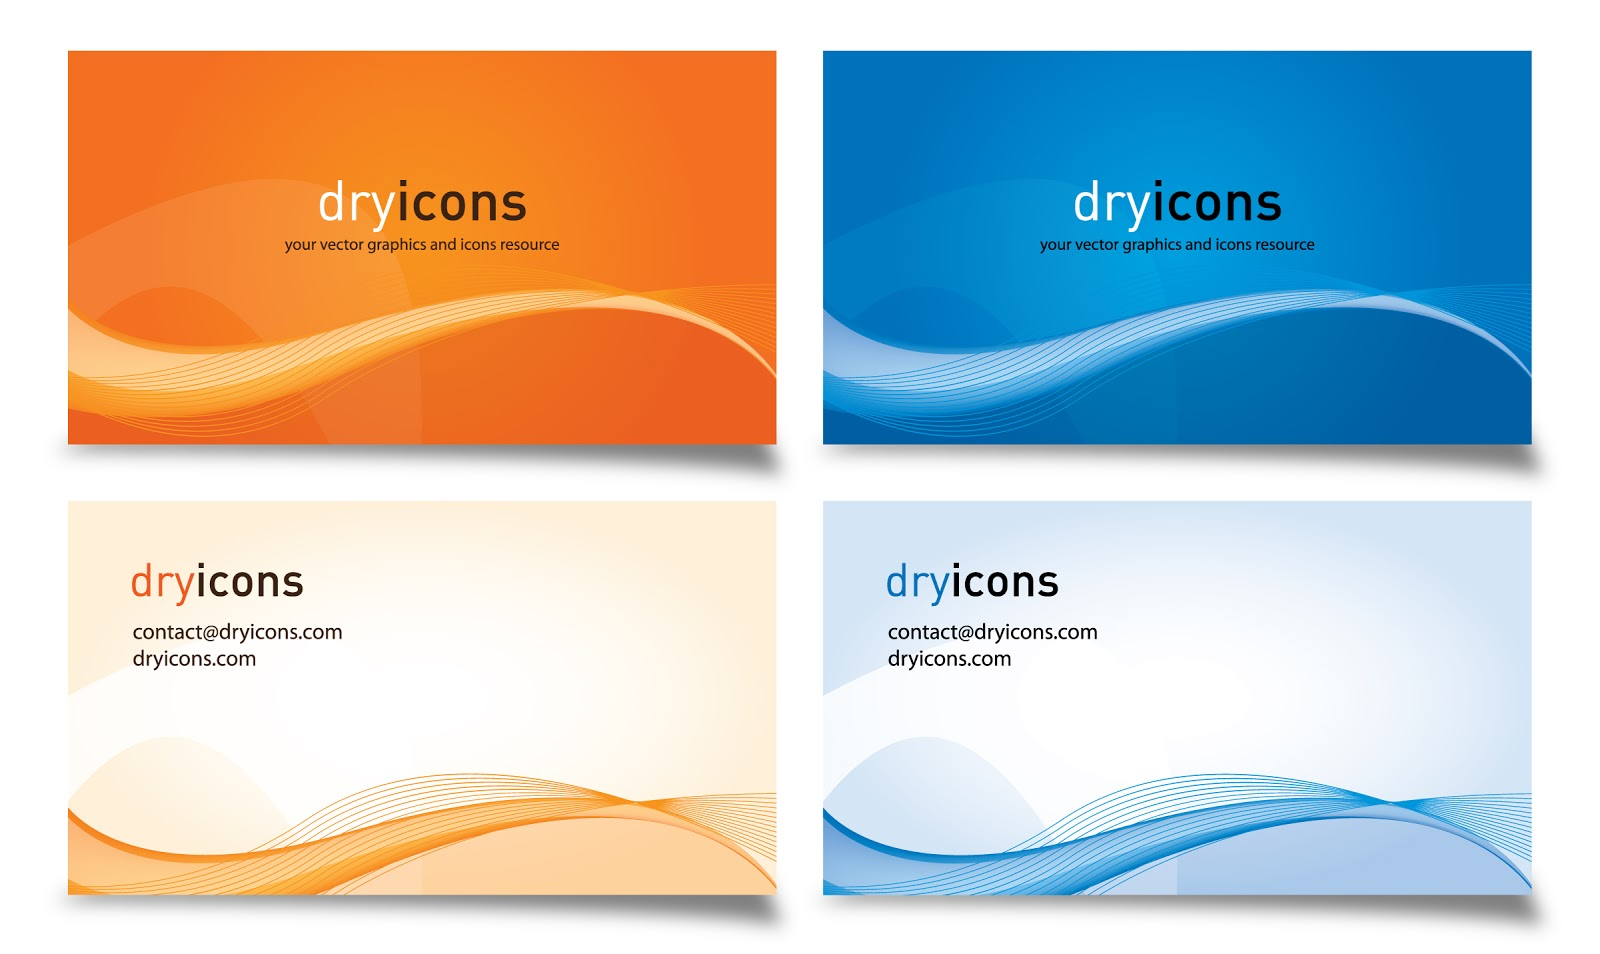 set of four stylish vector business card designs templates in blue    Visiting Card Background Design Full